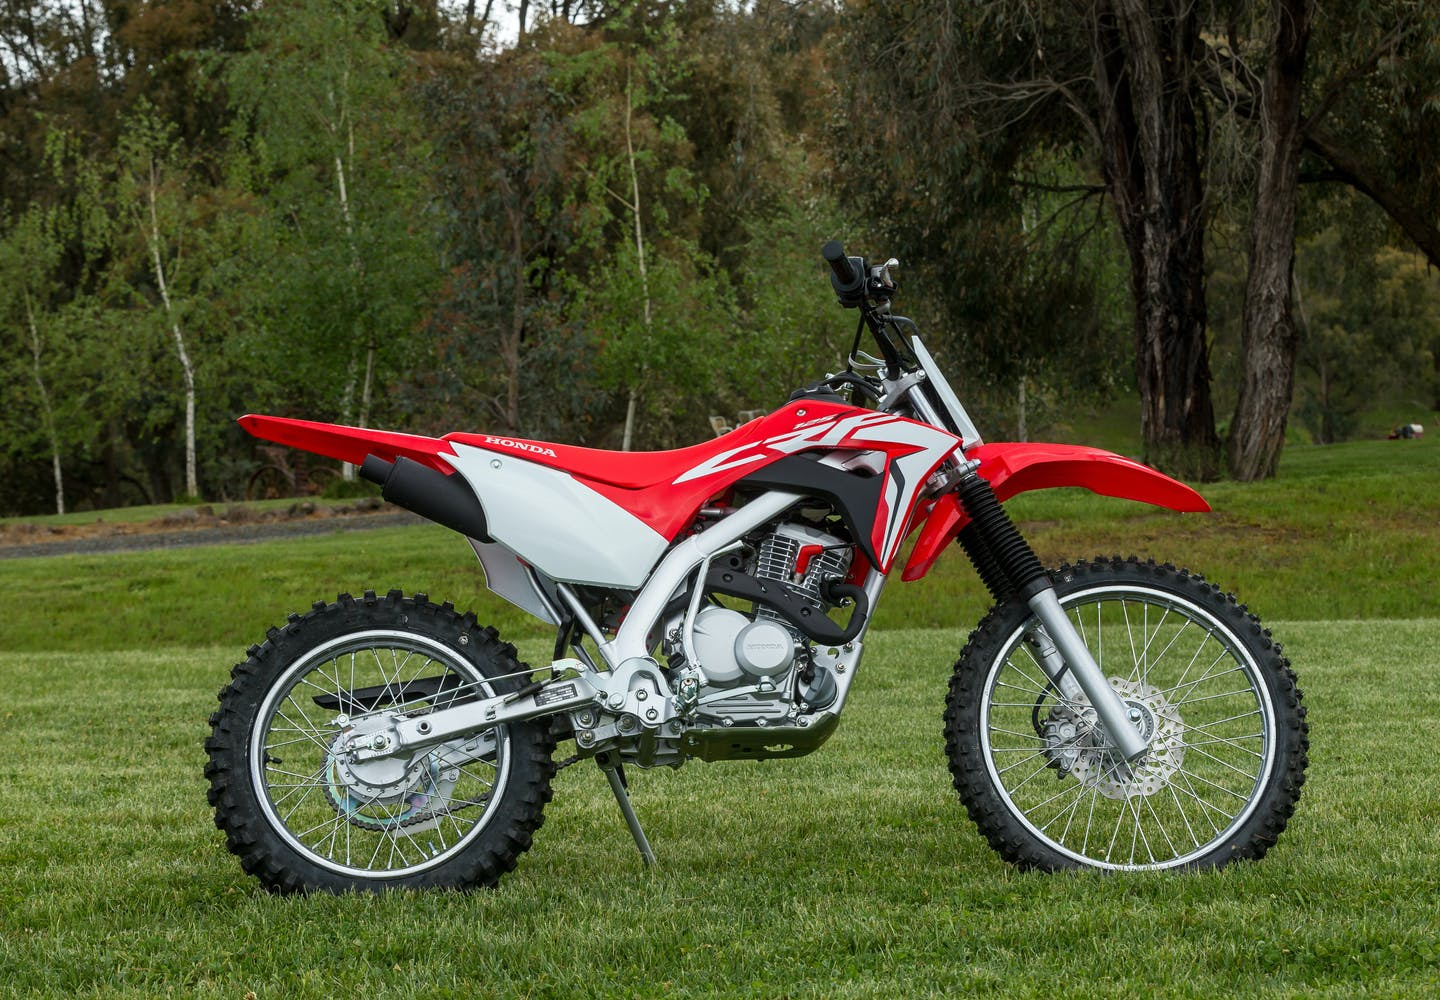 Honda CRF125F in extreme red colour